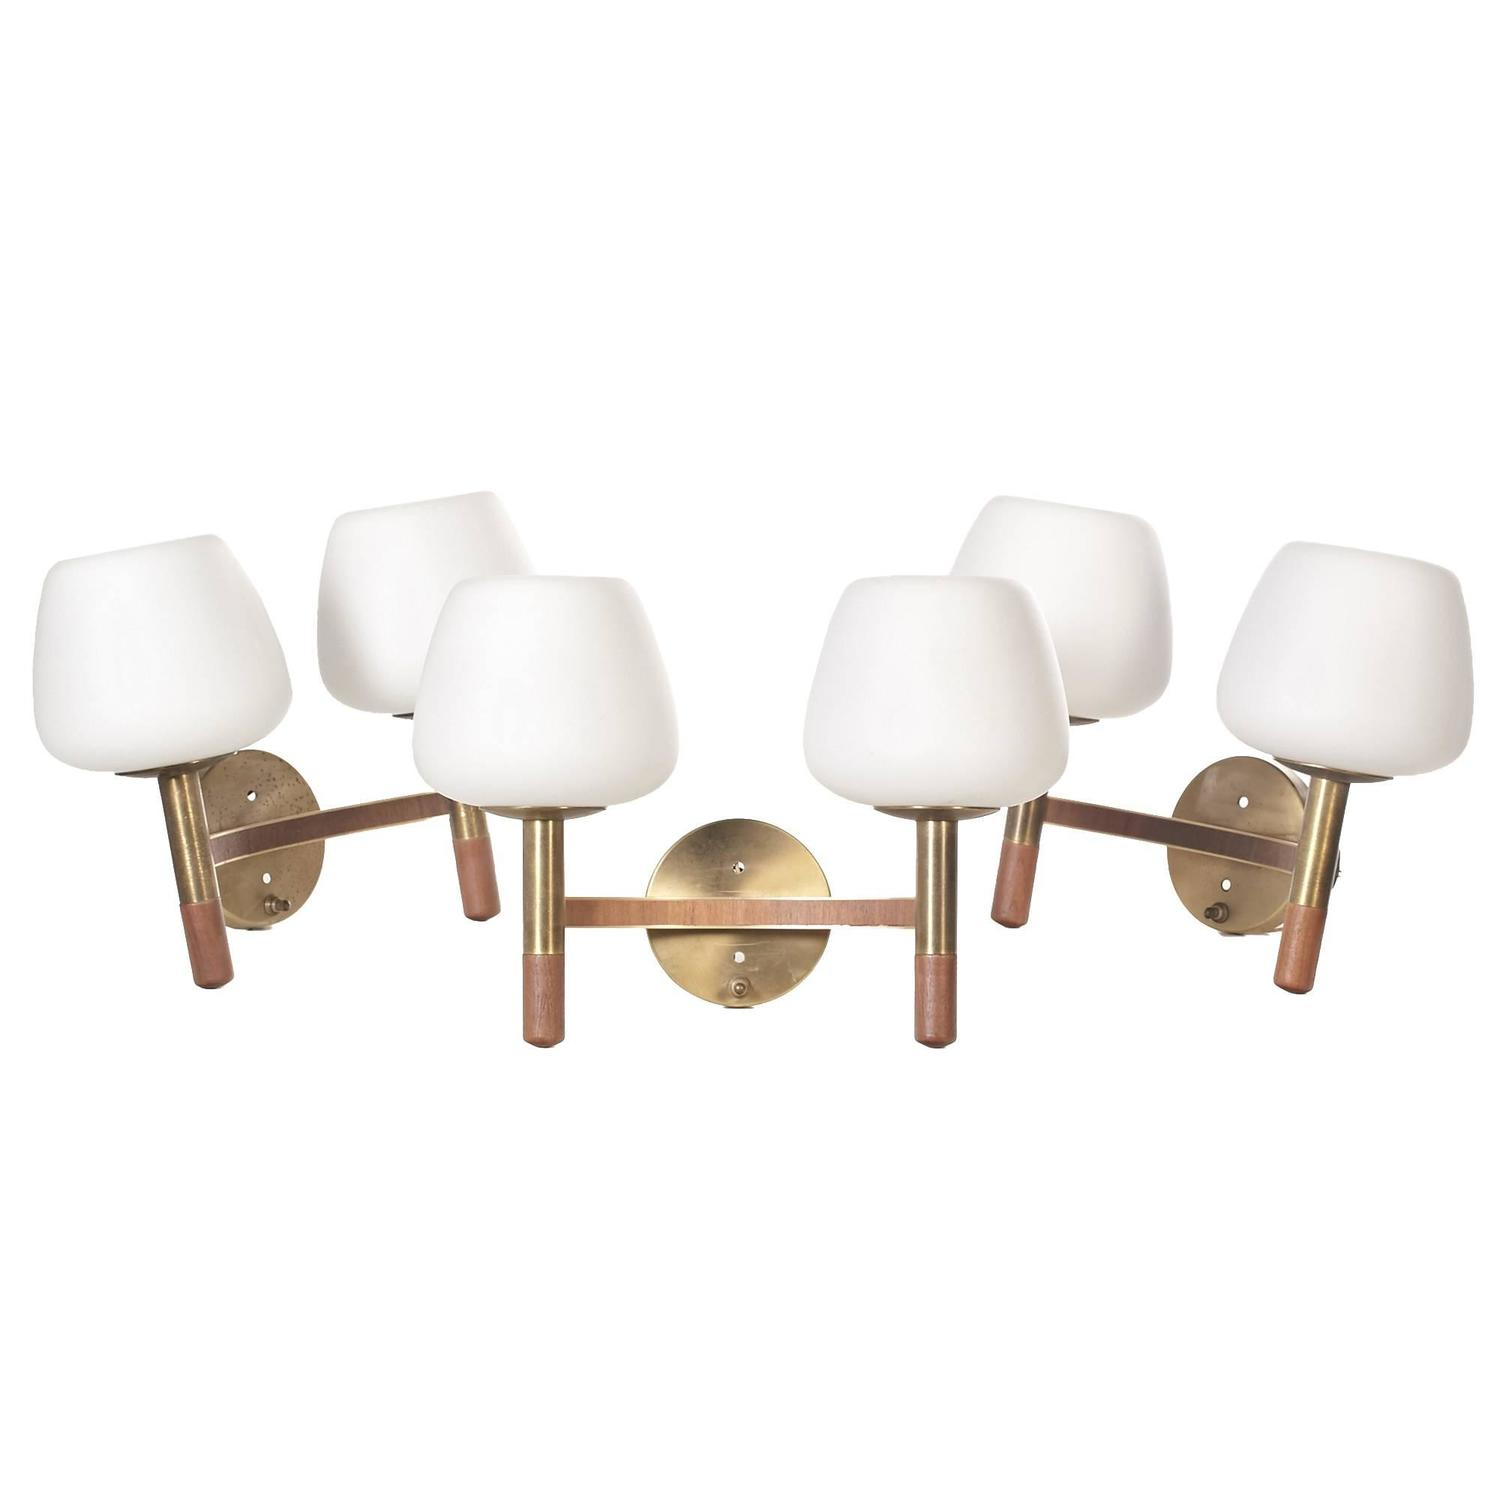 Wall Sconces Glass Shades : 1960s Walnut and Brass Wall Sconces with Finnish Glass Shades, Set of Three at 1stdibs